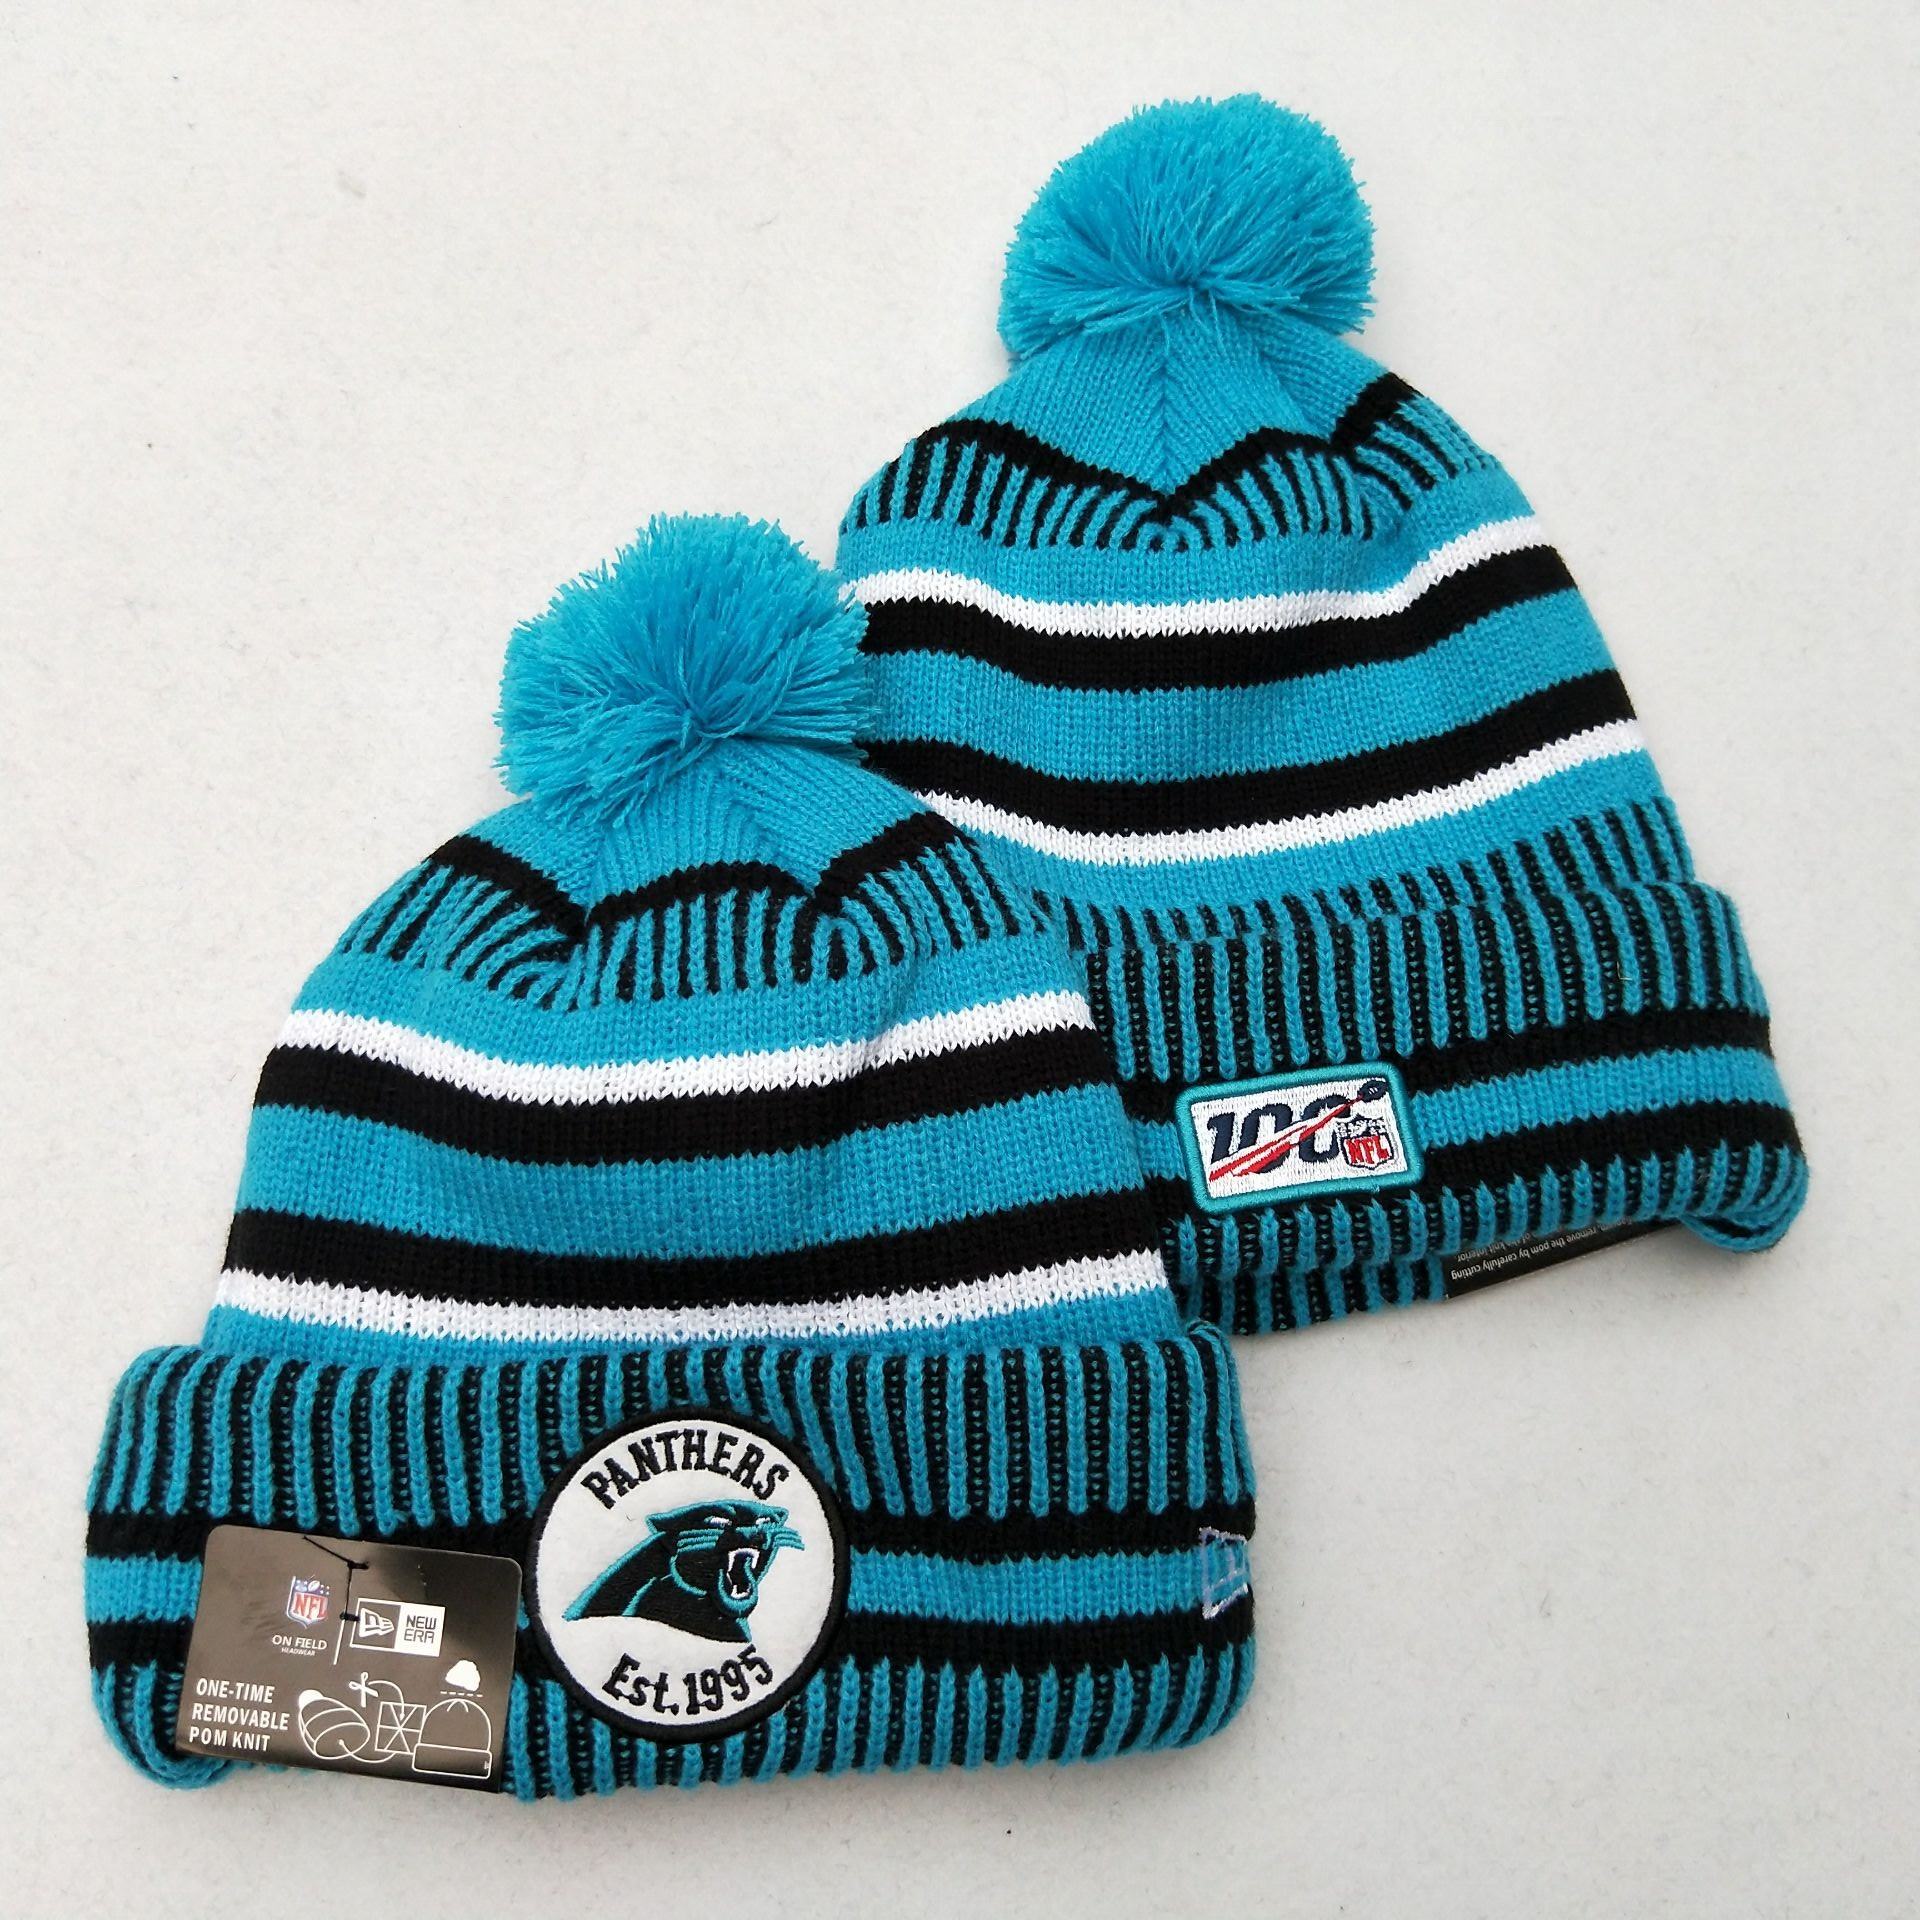 Panthers Team Logo Blue 100th Season Pom Knit Hat YD